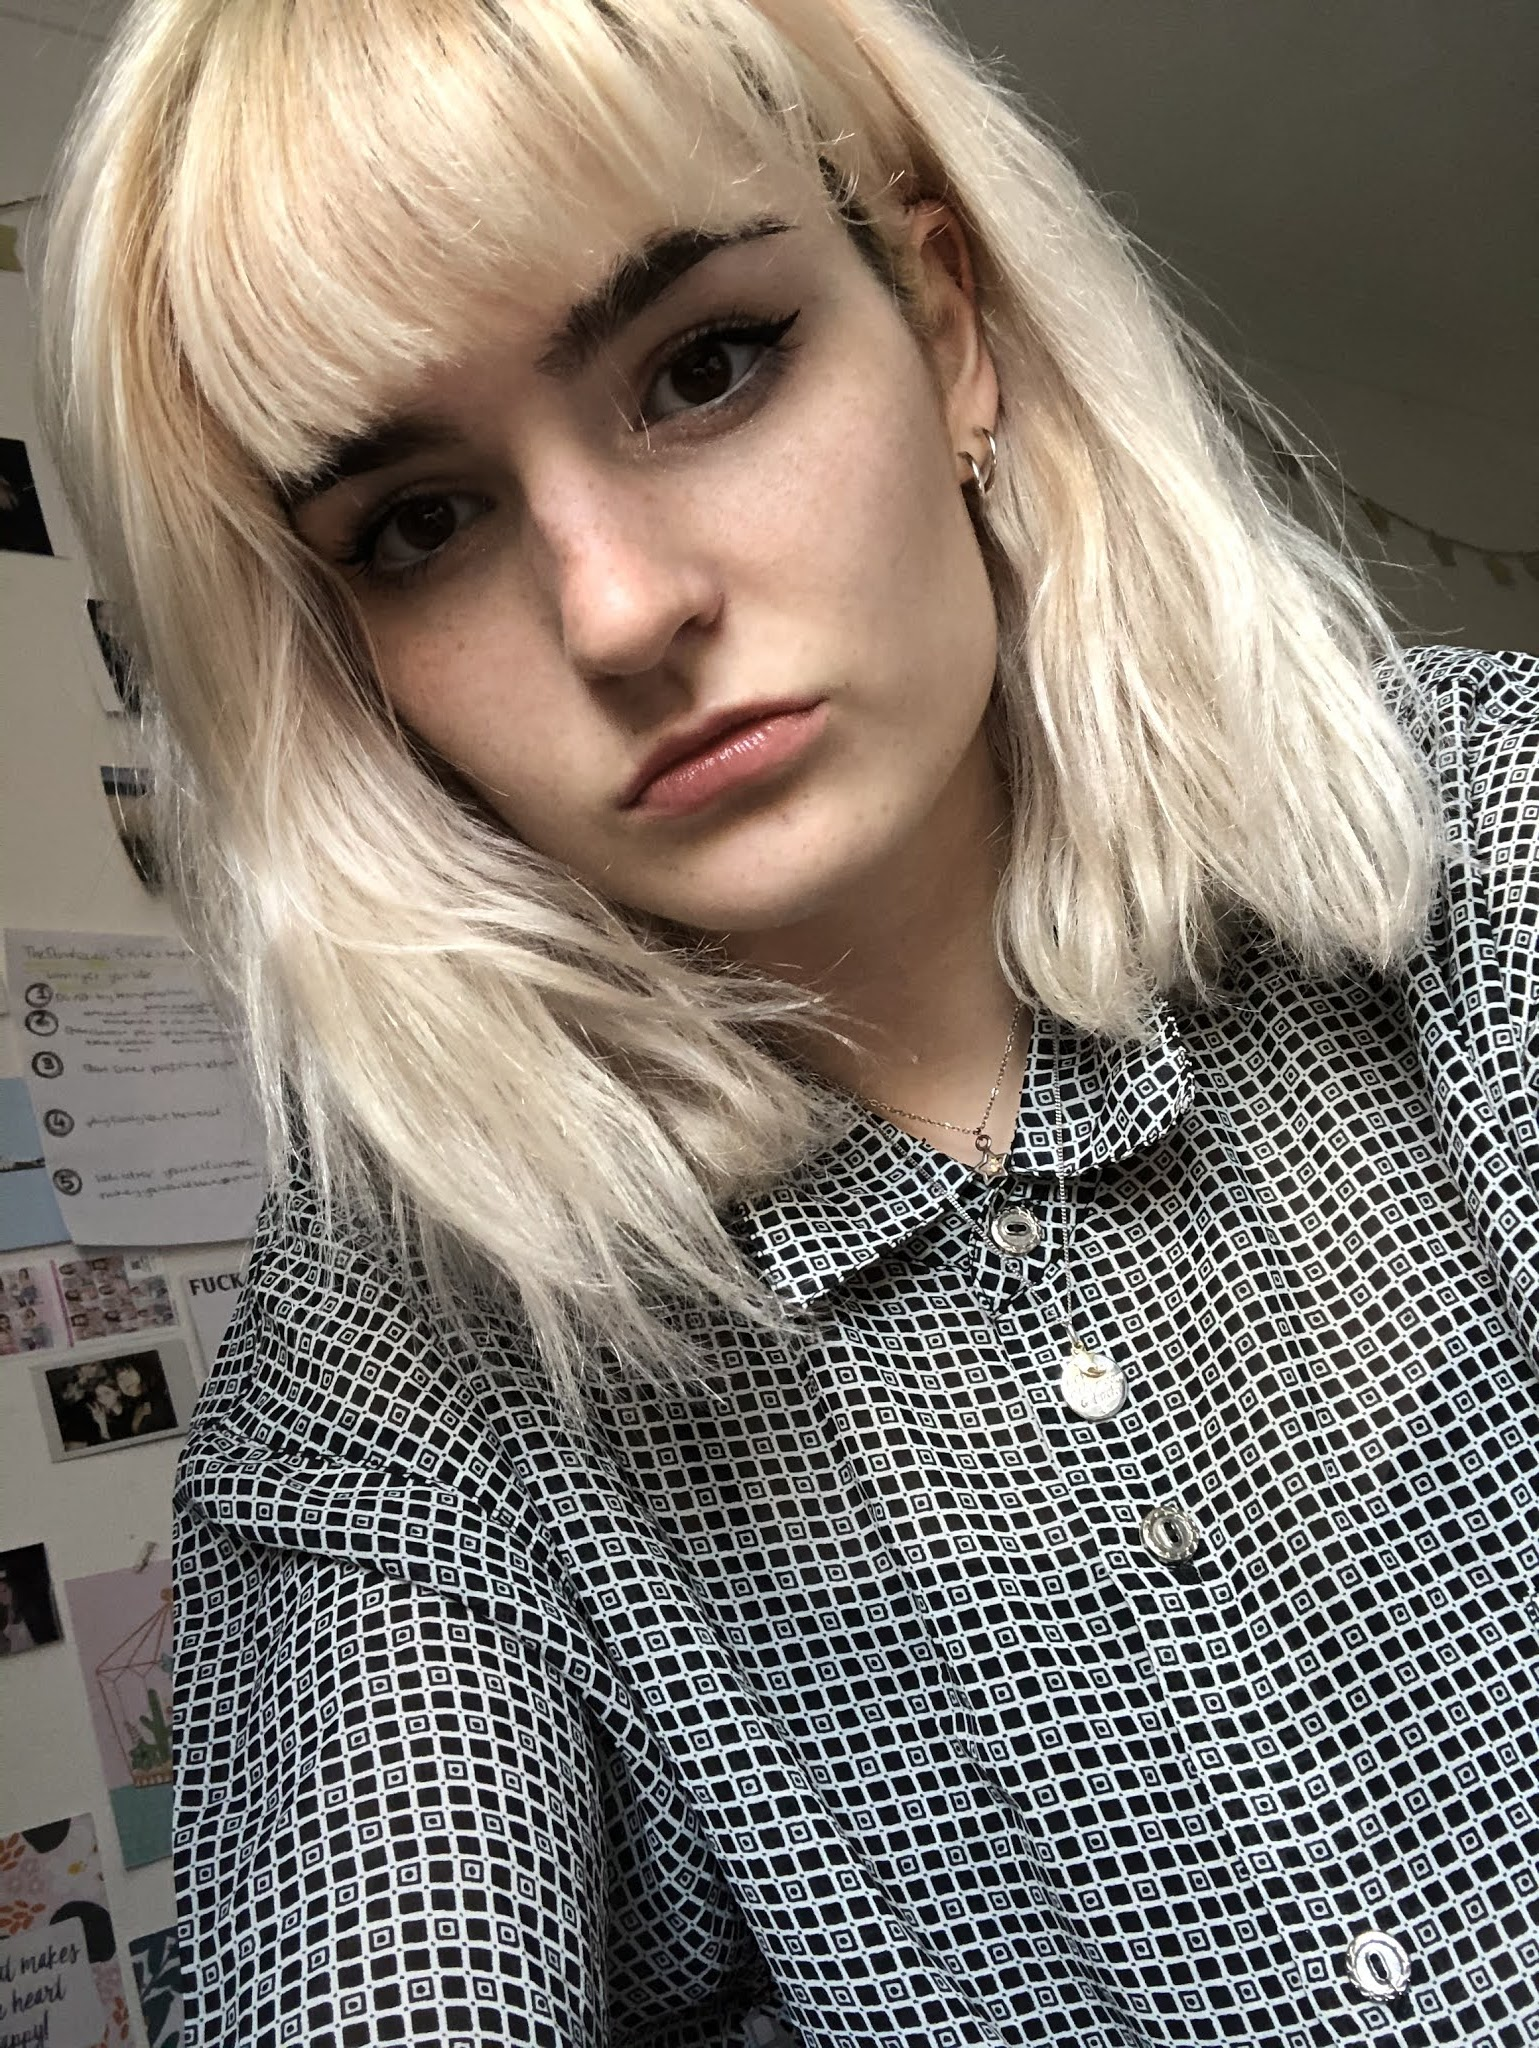 Girl with bleached blonde hair and a vintage shirt